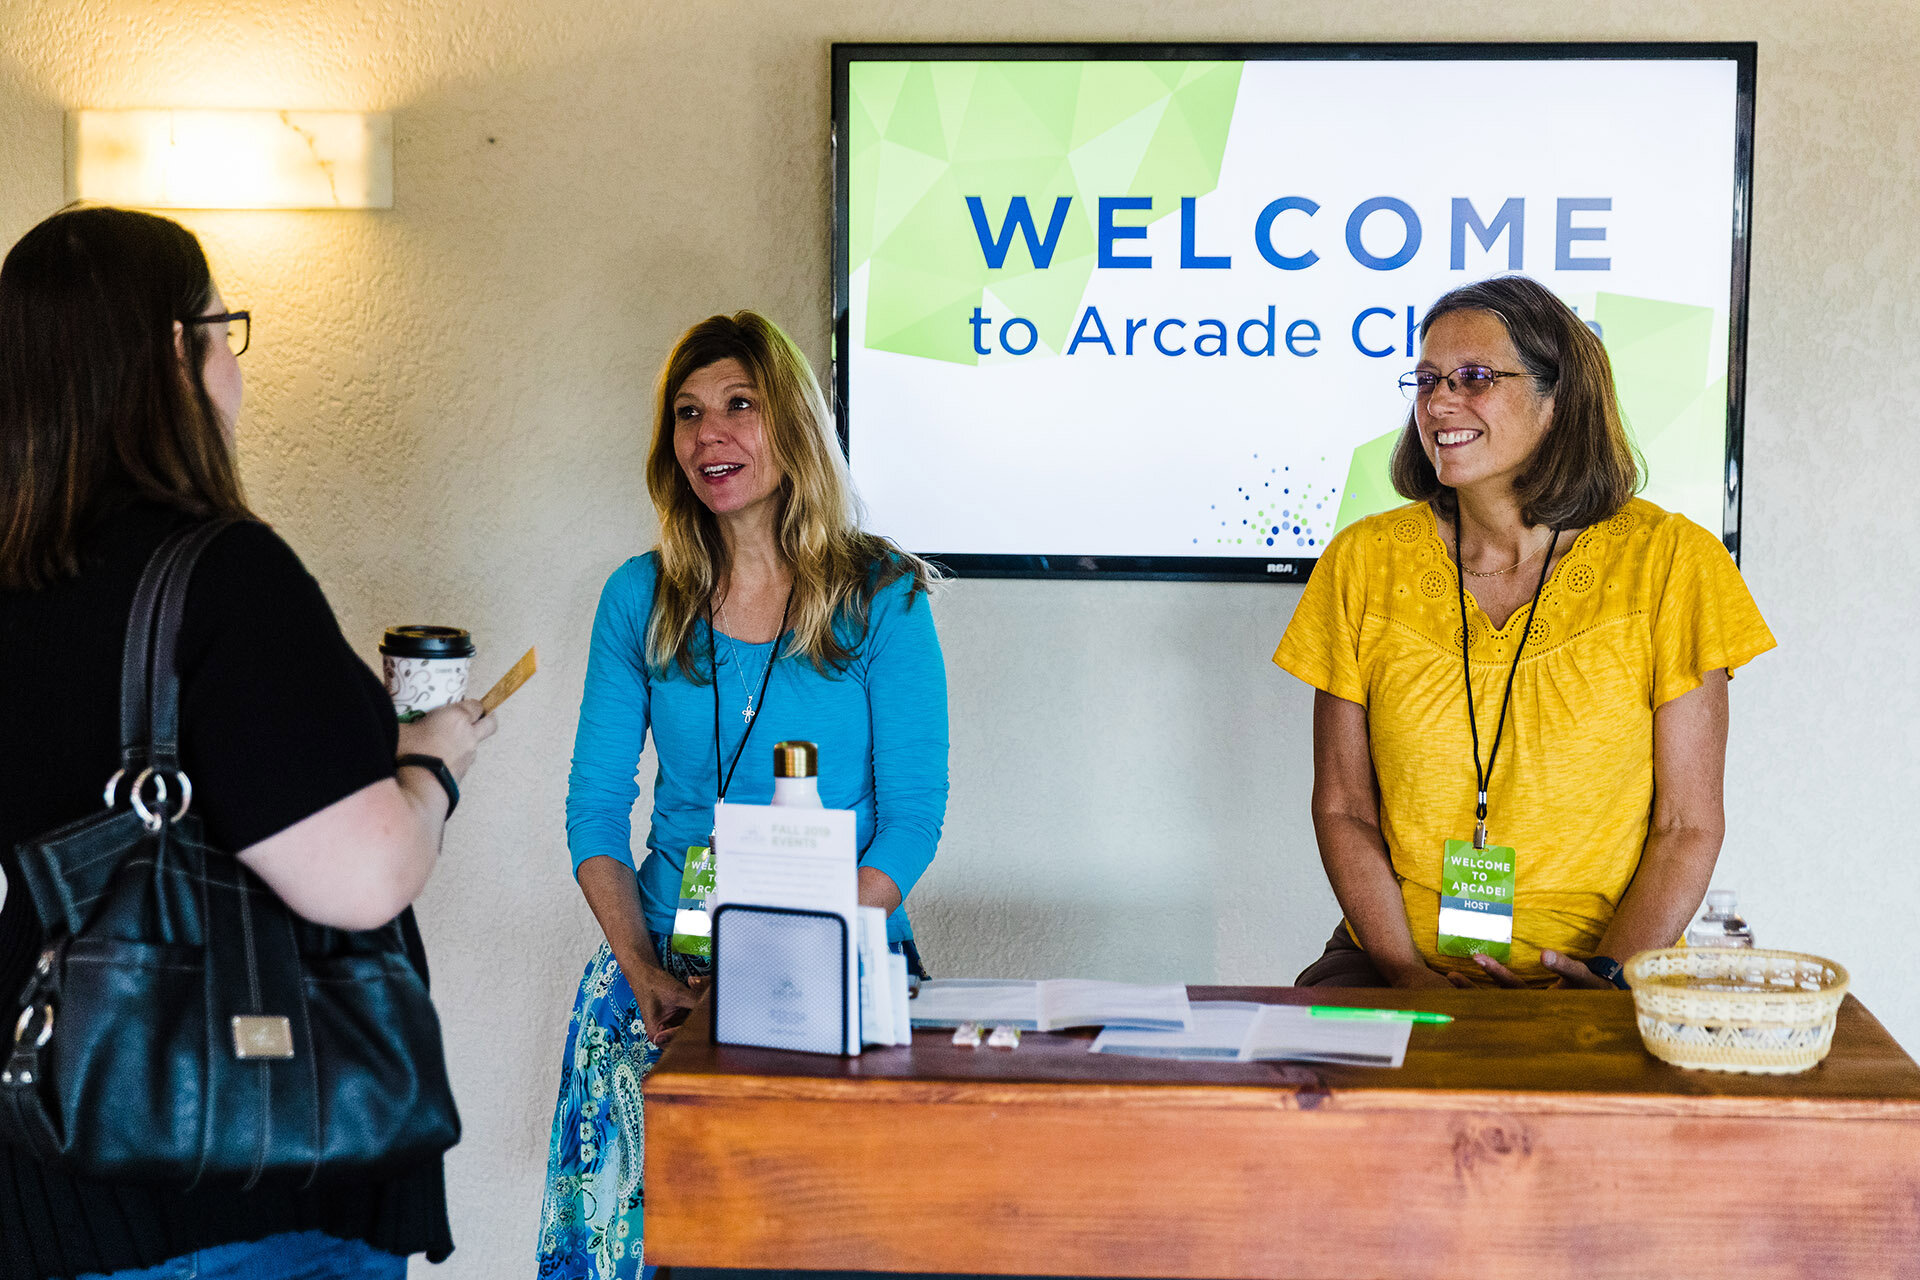 HOSPITALITY - Welcome Hub, Greeters, UshersCommon Grounds Coffee CartLibraryFor more information, contact hospitality@arcadechurch.com.